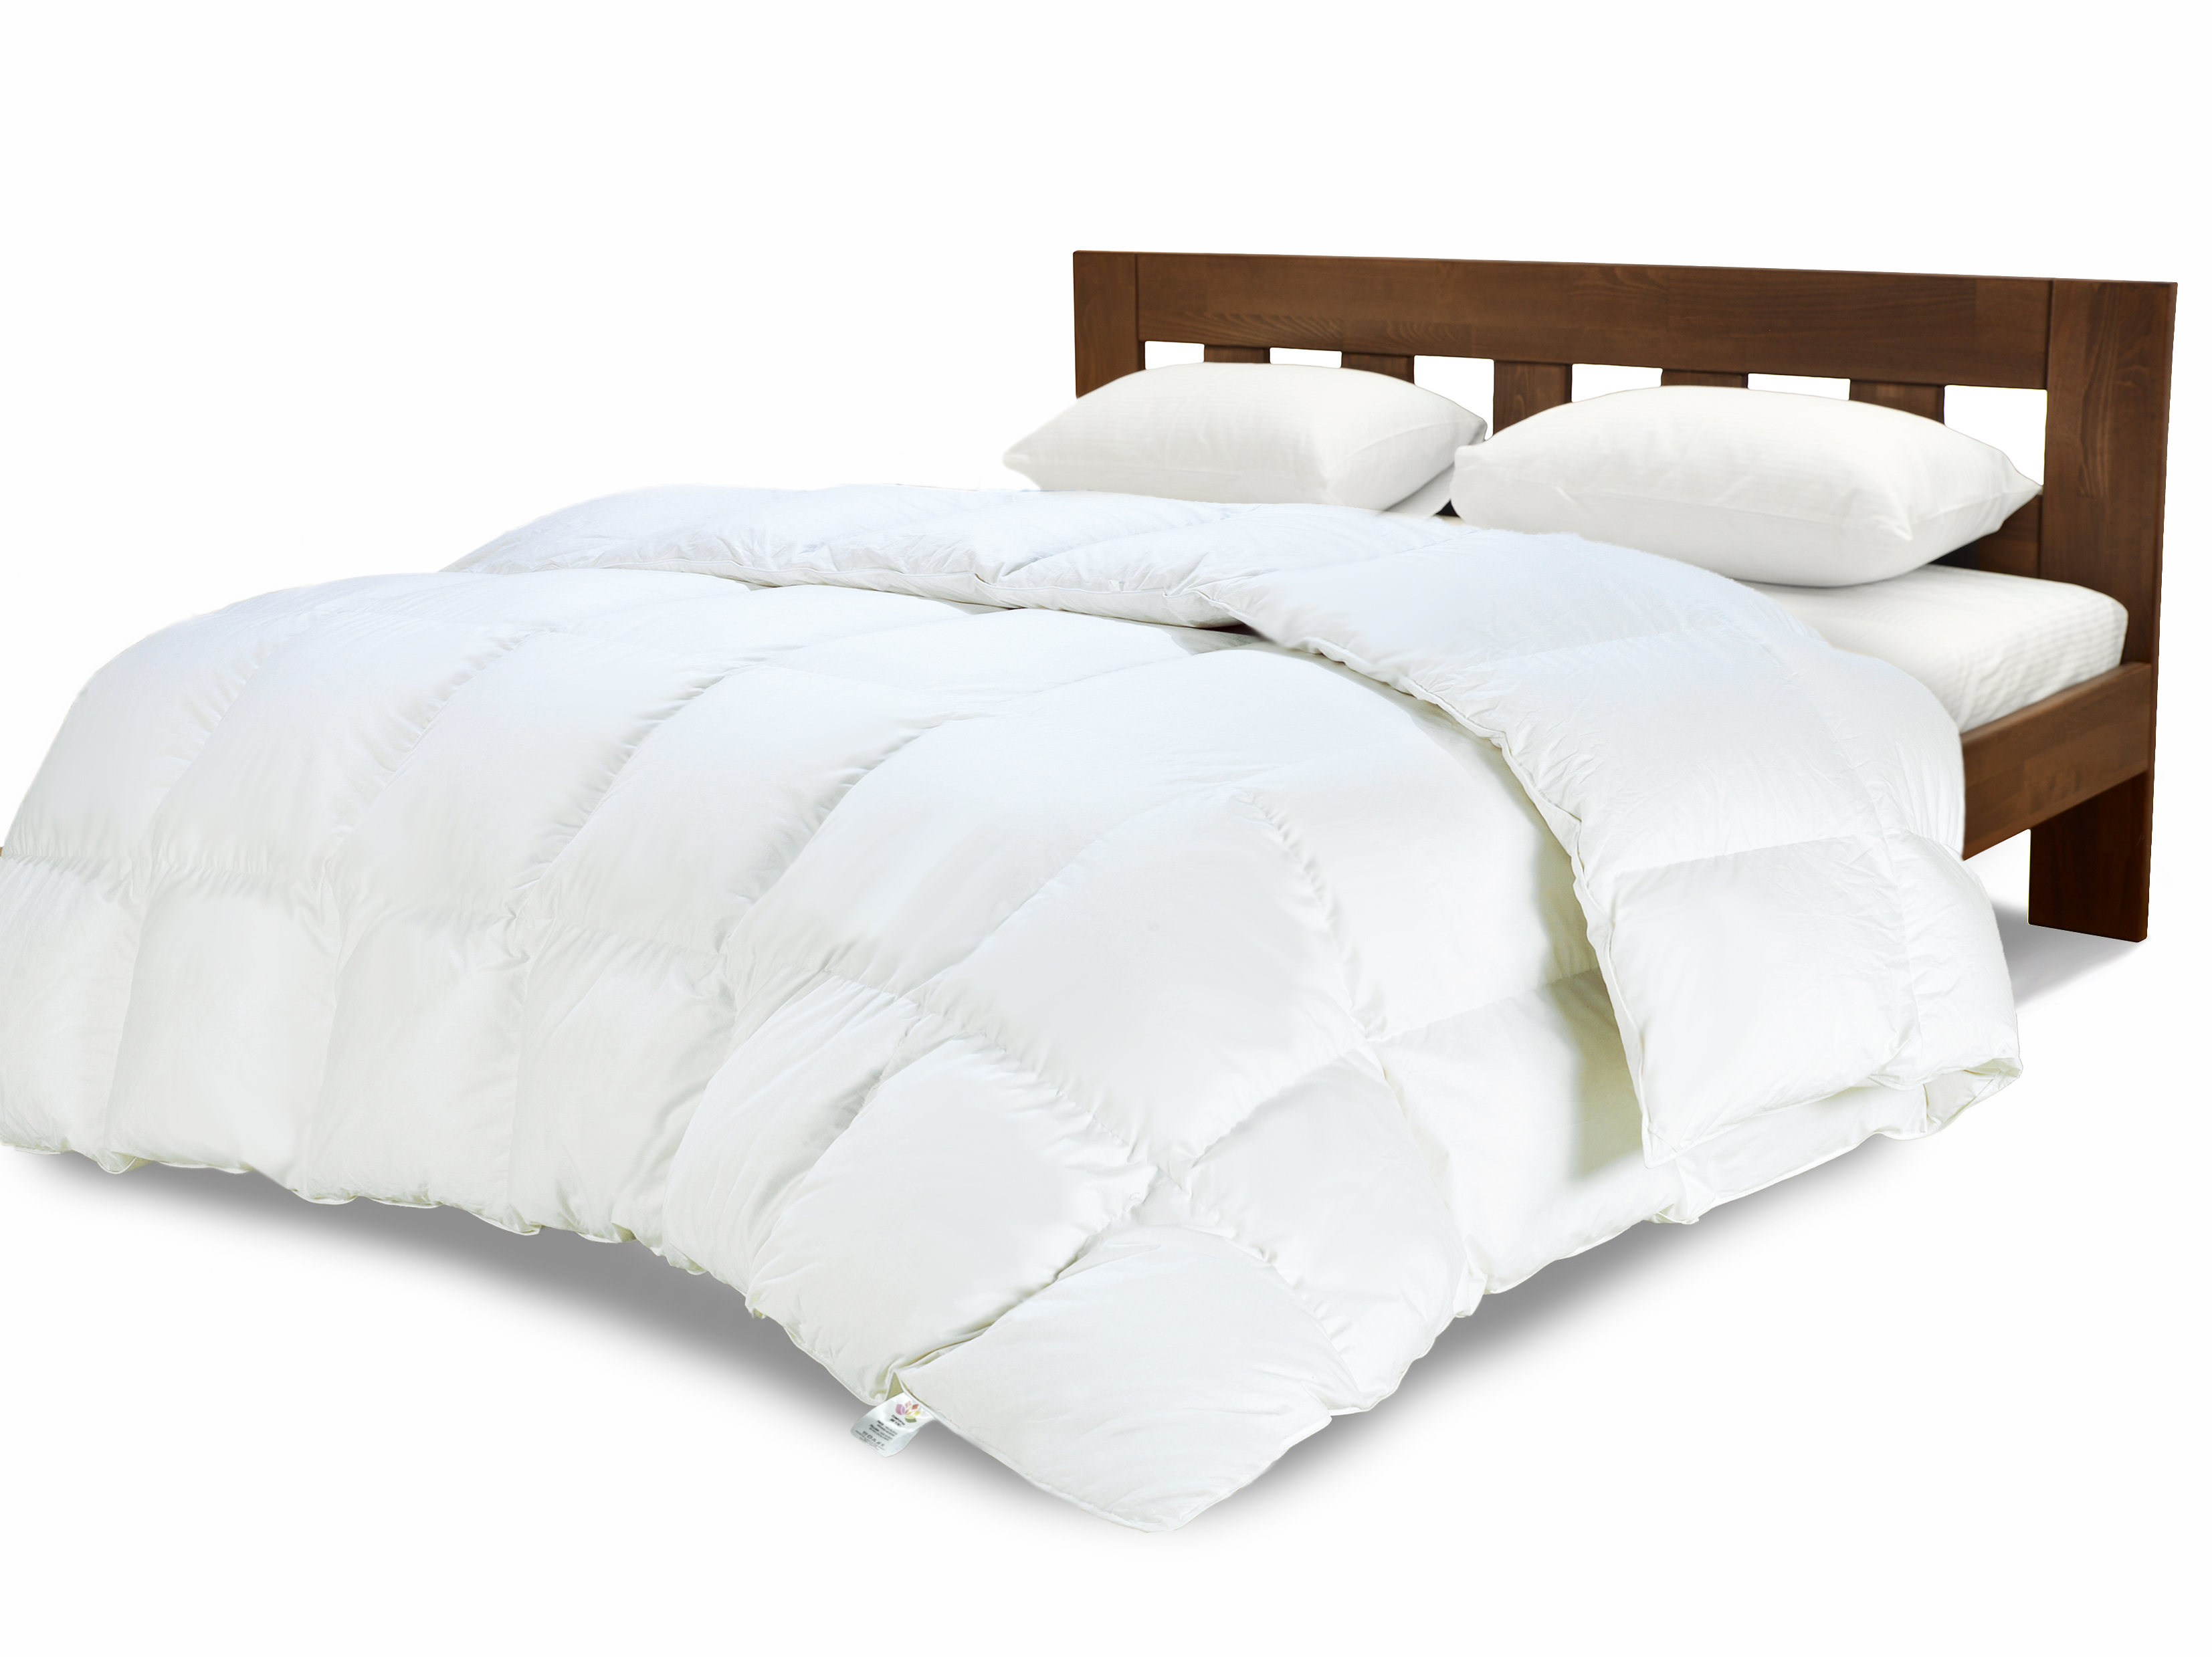 Walmart Goose Down Comforter St James Home White Goose